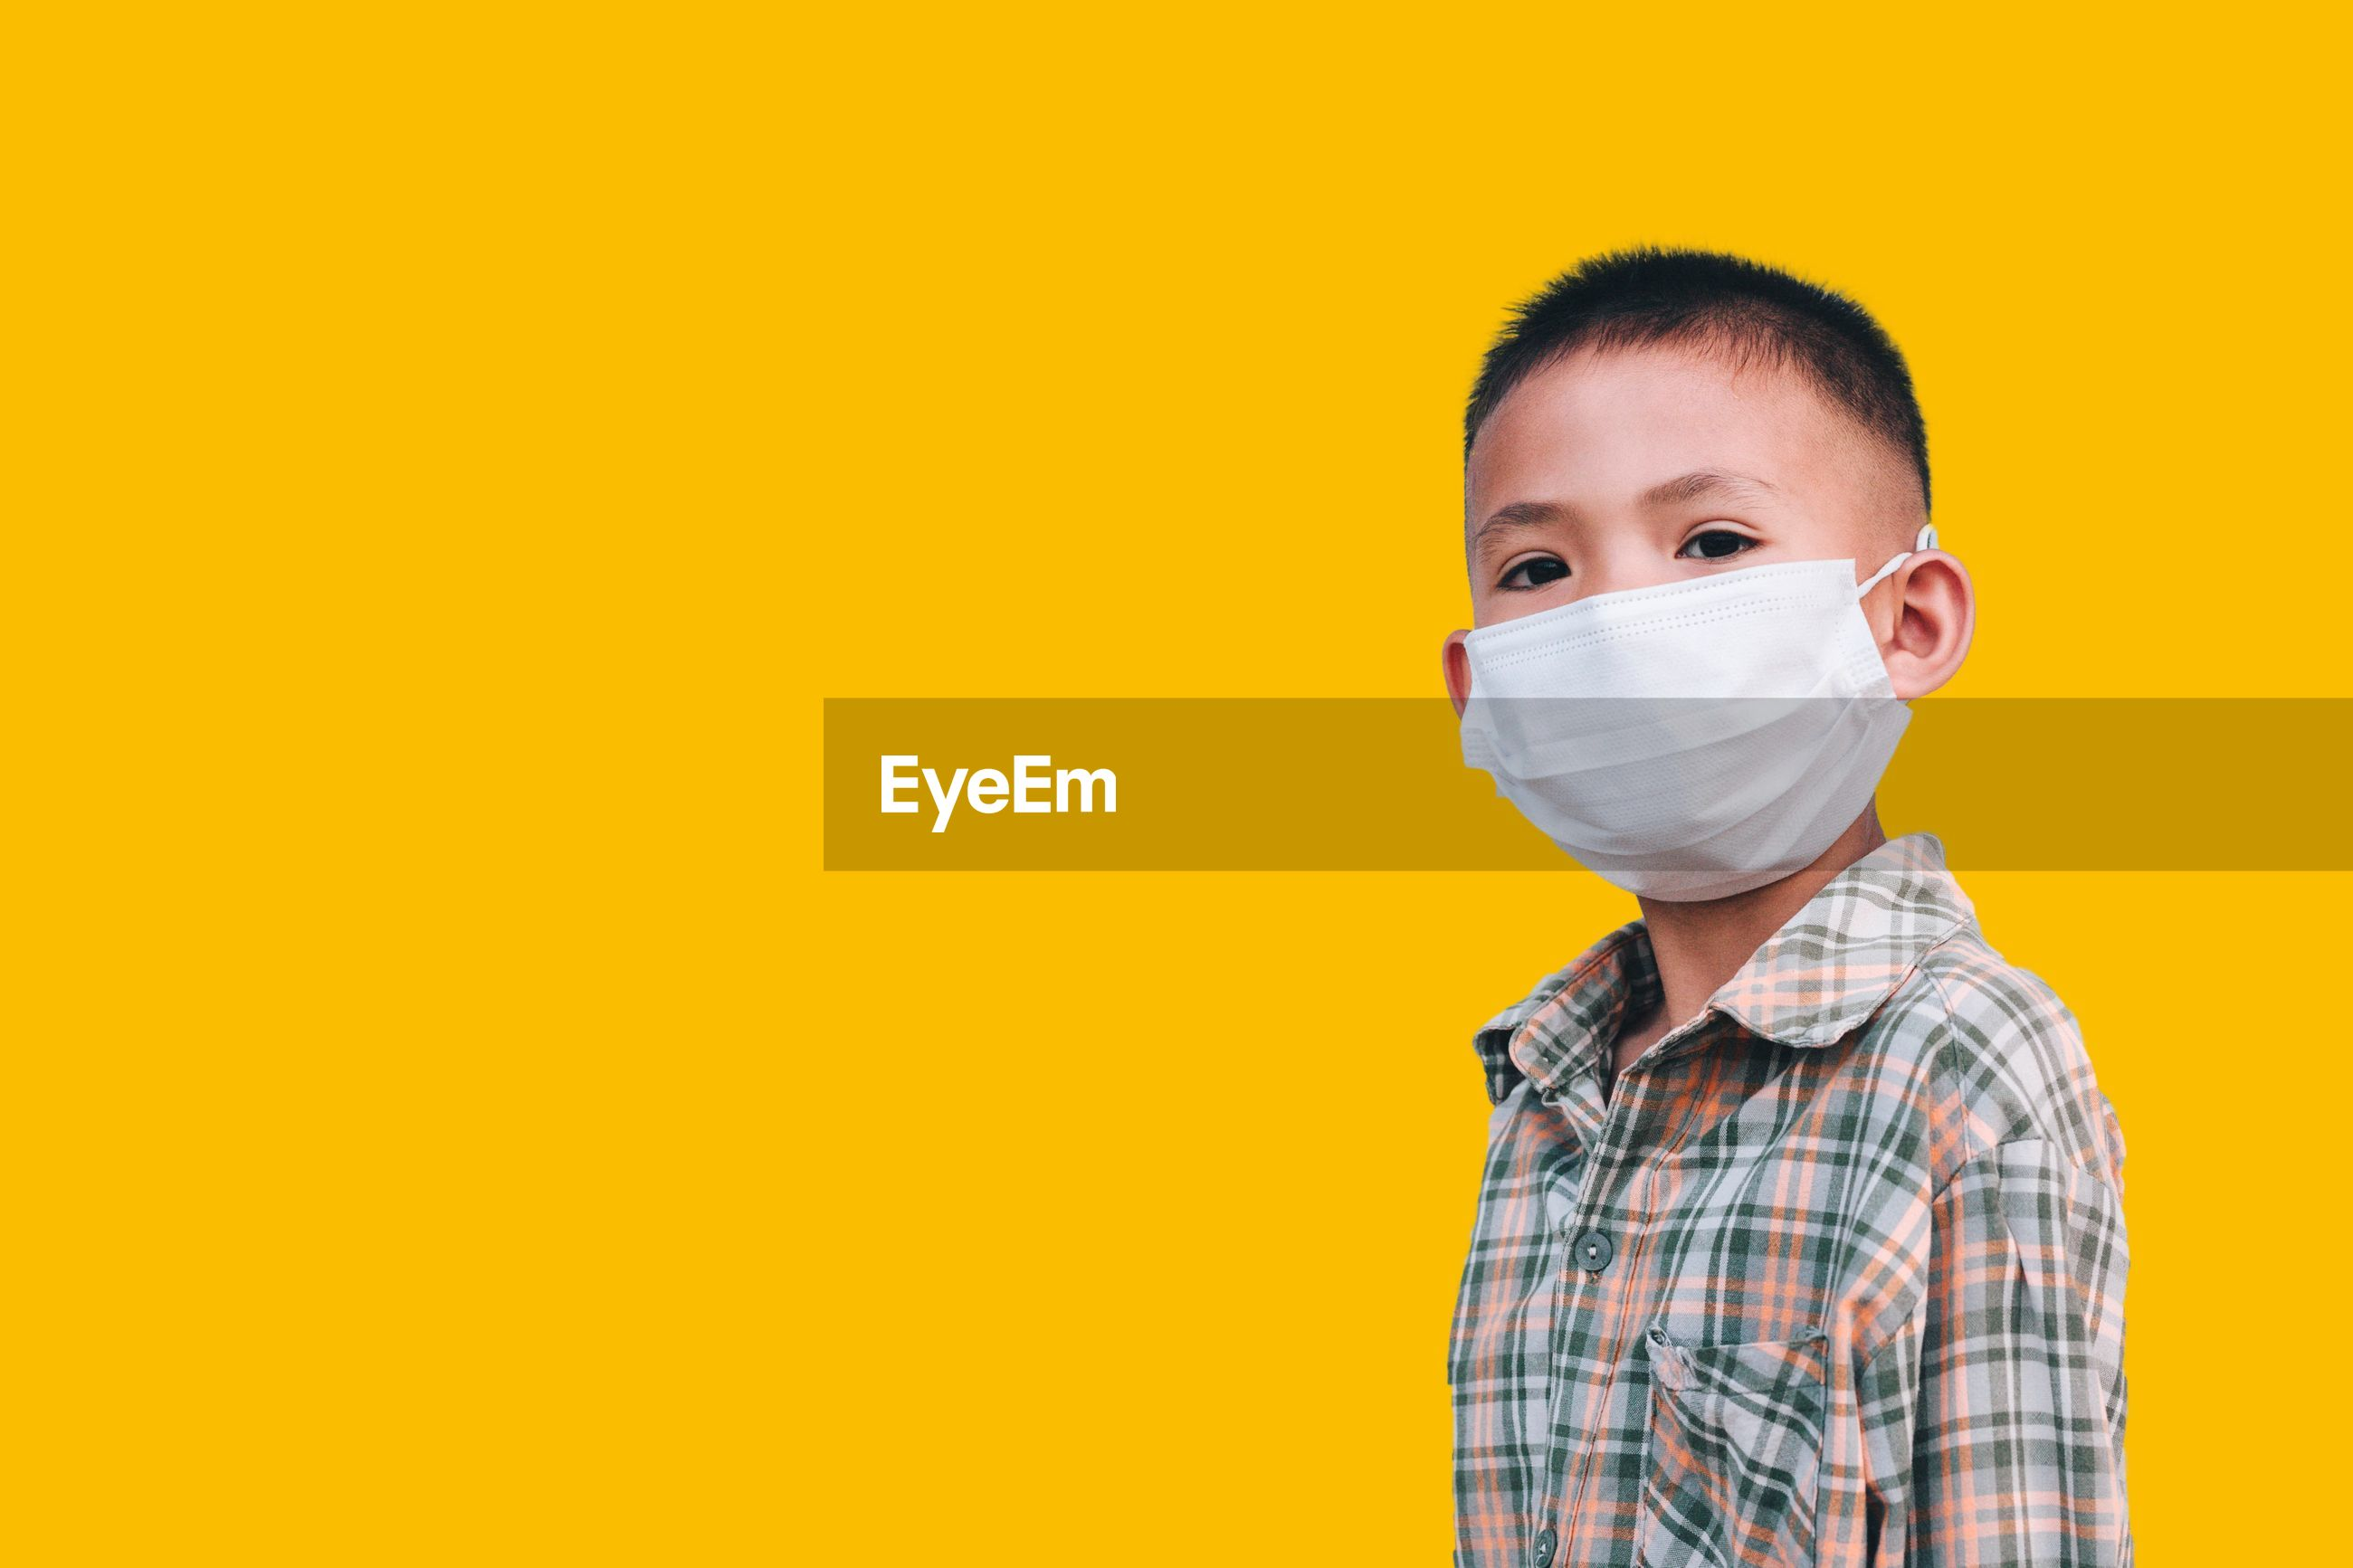 Portrait of boy wearing mask against yellow background